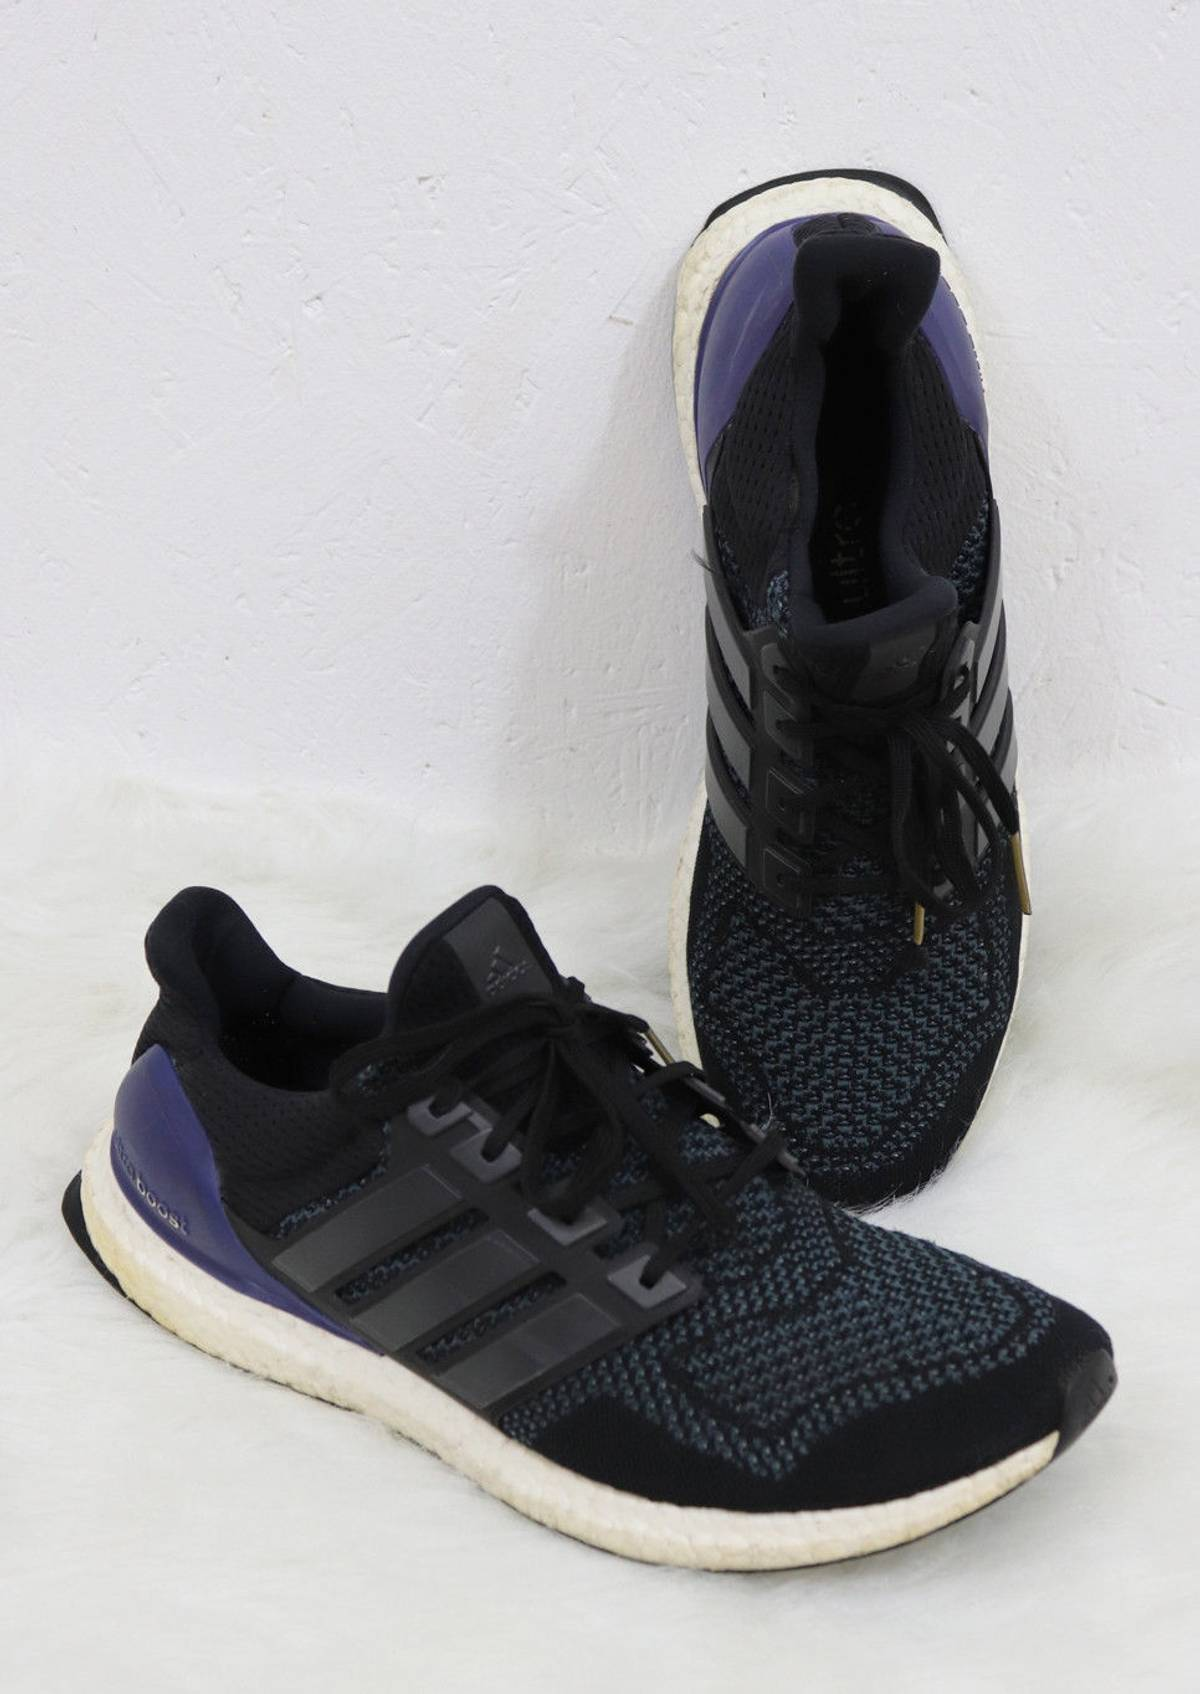 buy popular 8021c 8248c Adidas ×. Adidas Ultra Boost 1.0 Core Black Purple US 12 UK 11.5